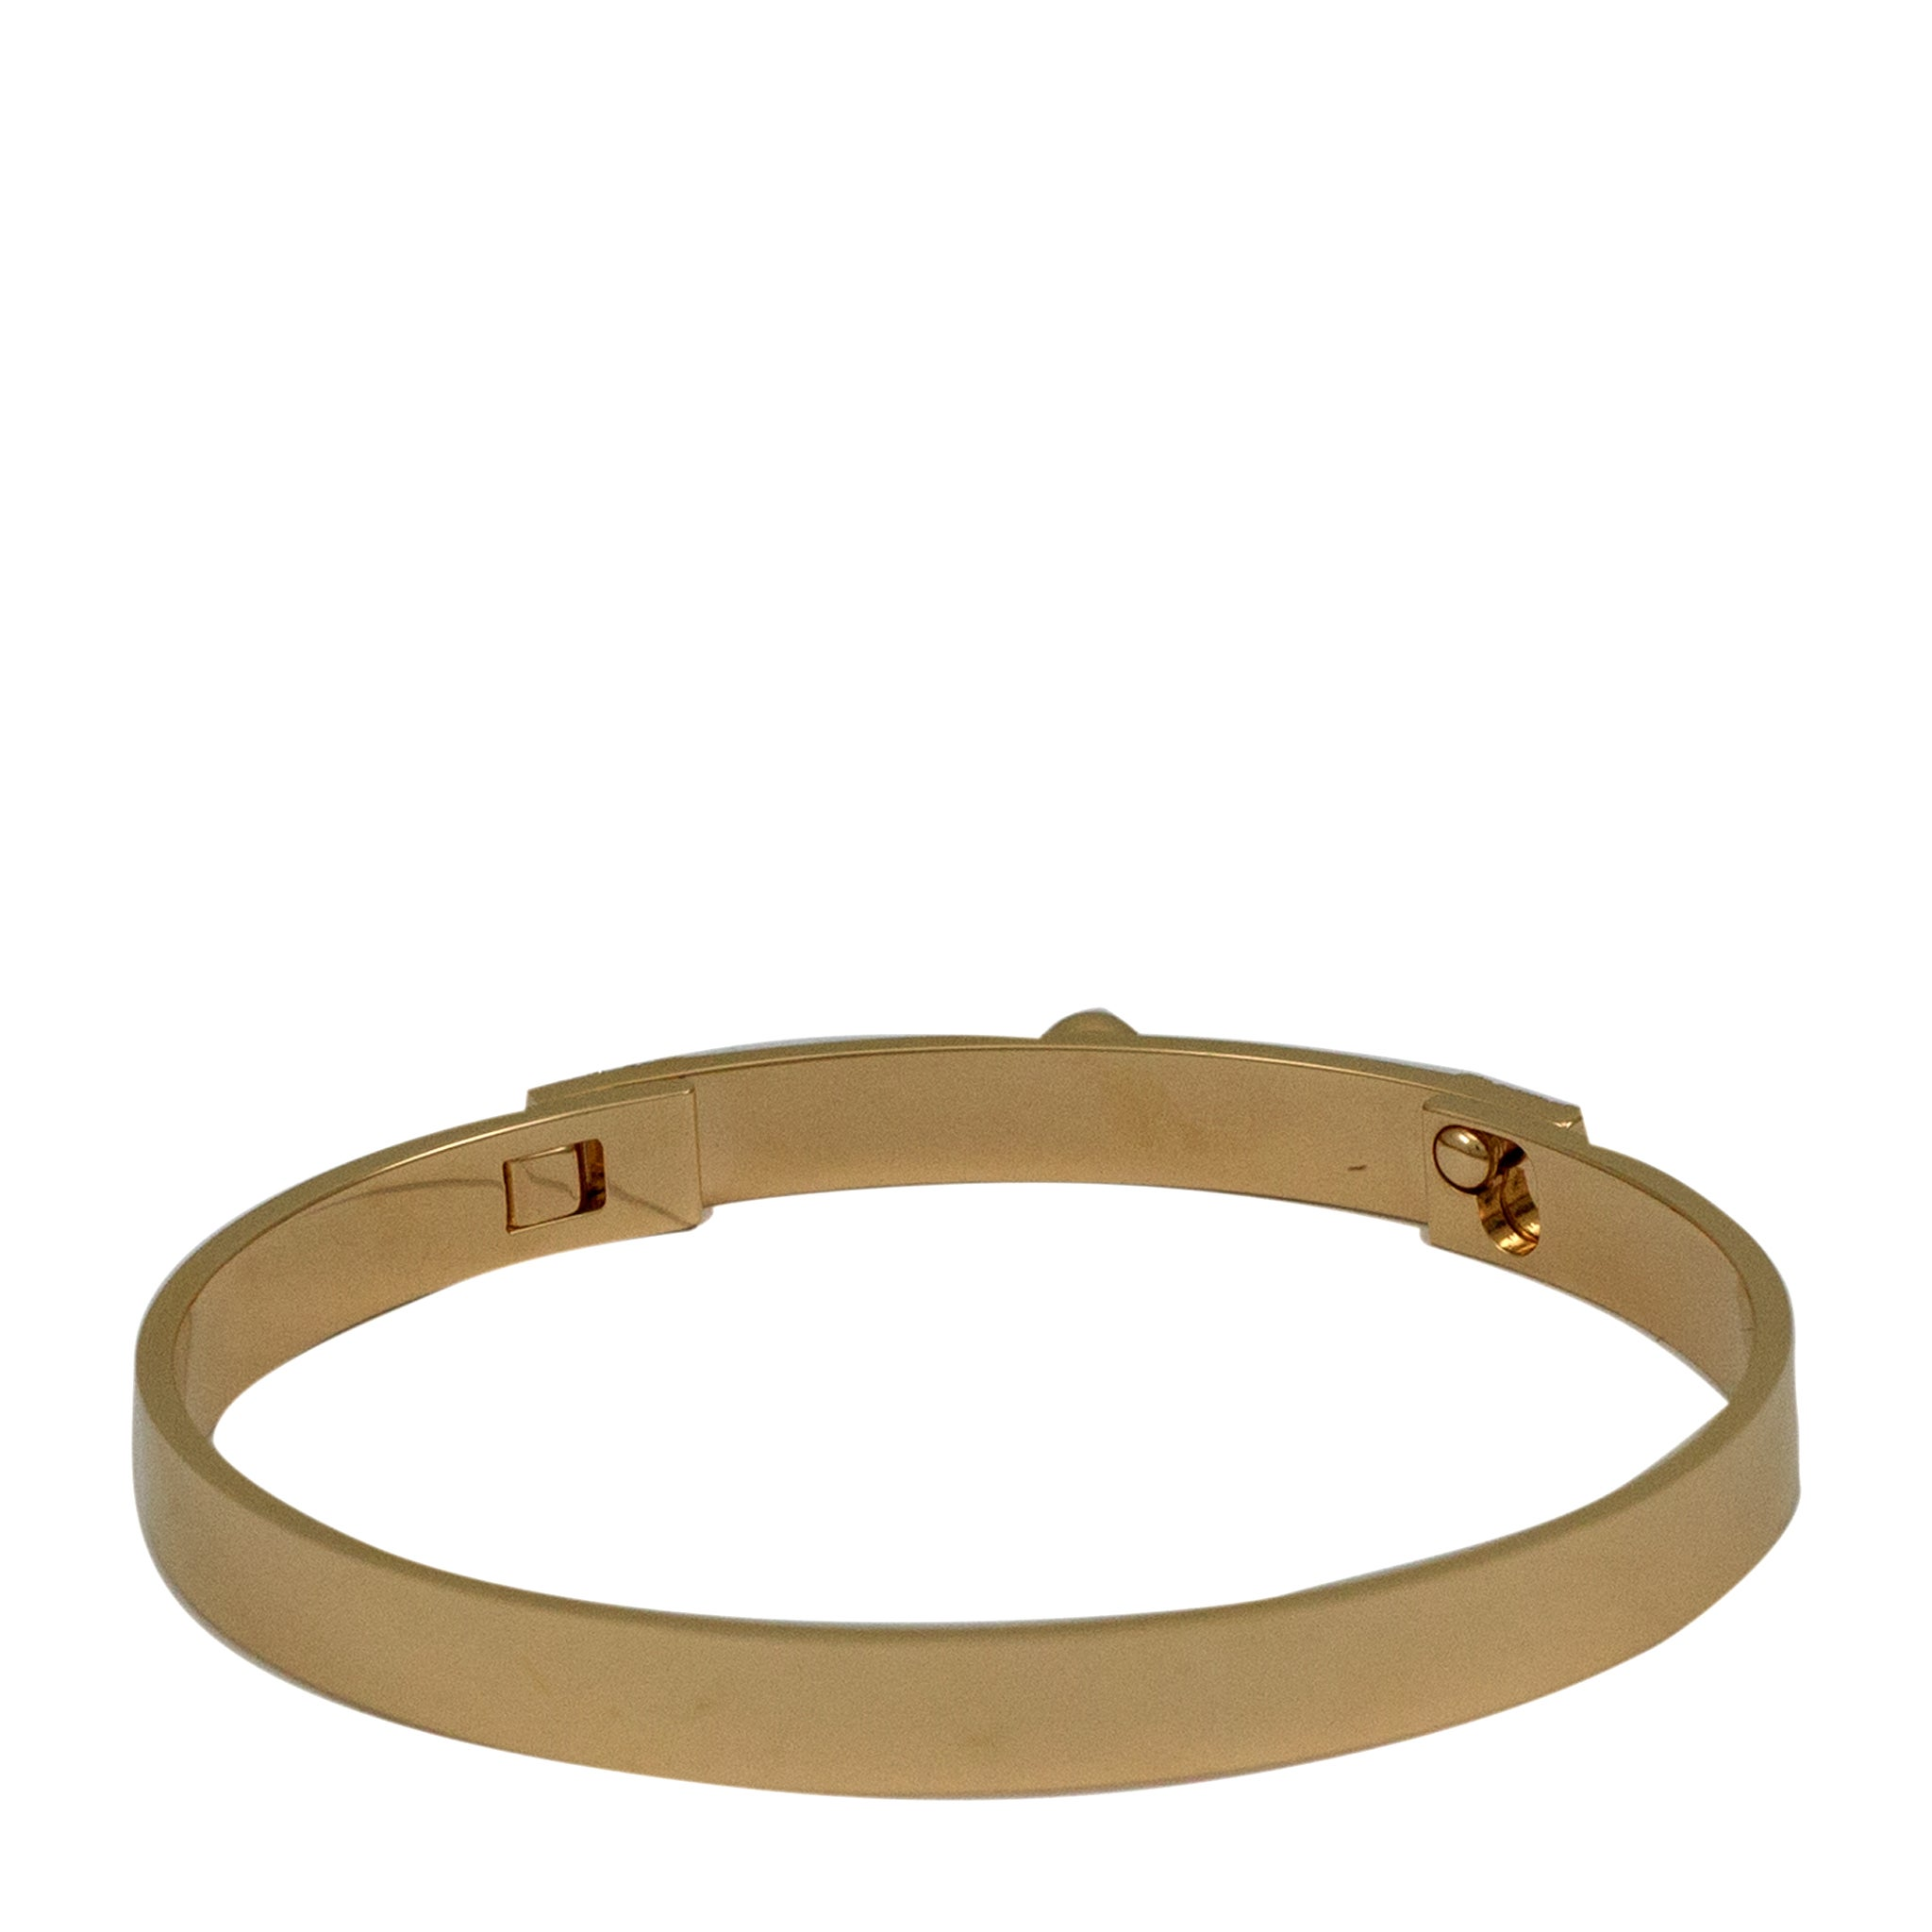 the herm enlarged jewelry chien products hermes bracelets s wrap realreal bracelet de collier